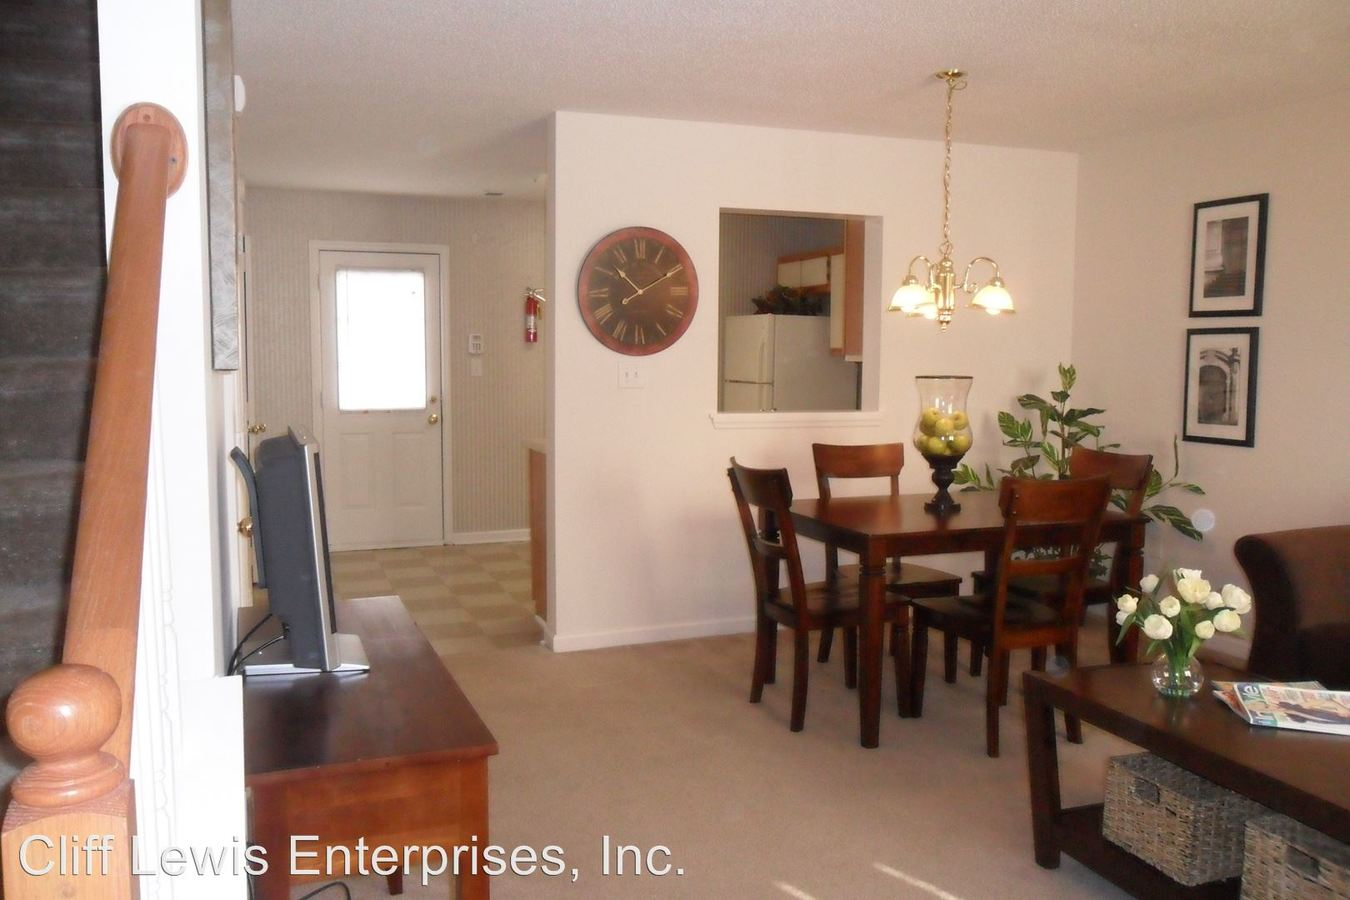 2 Bedrooms 2 Bathrooms Apartment for rent at 1090 Barnett Shoals Rd. in Athens, GA